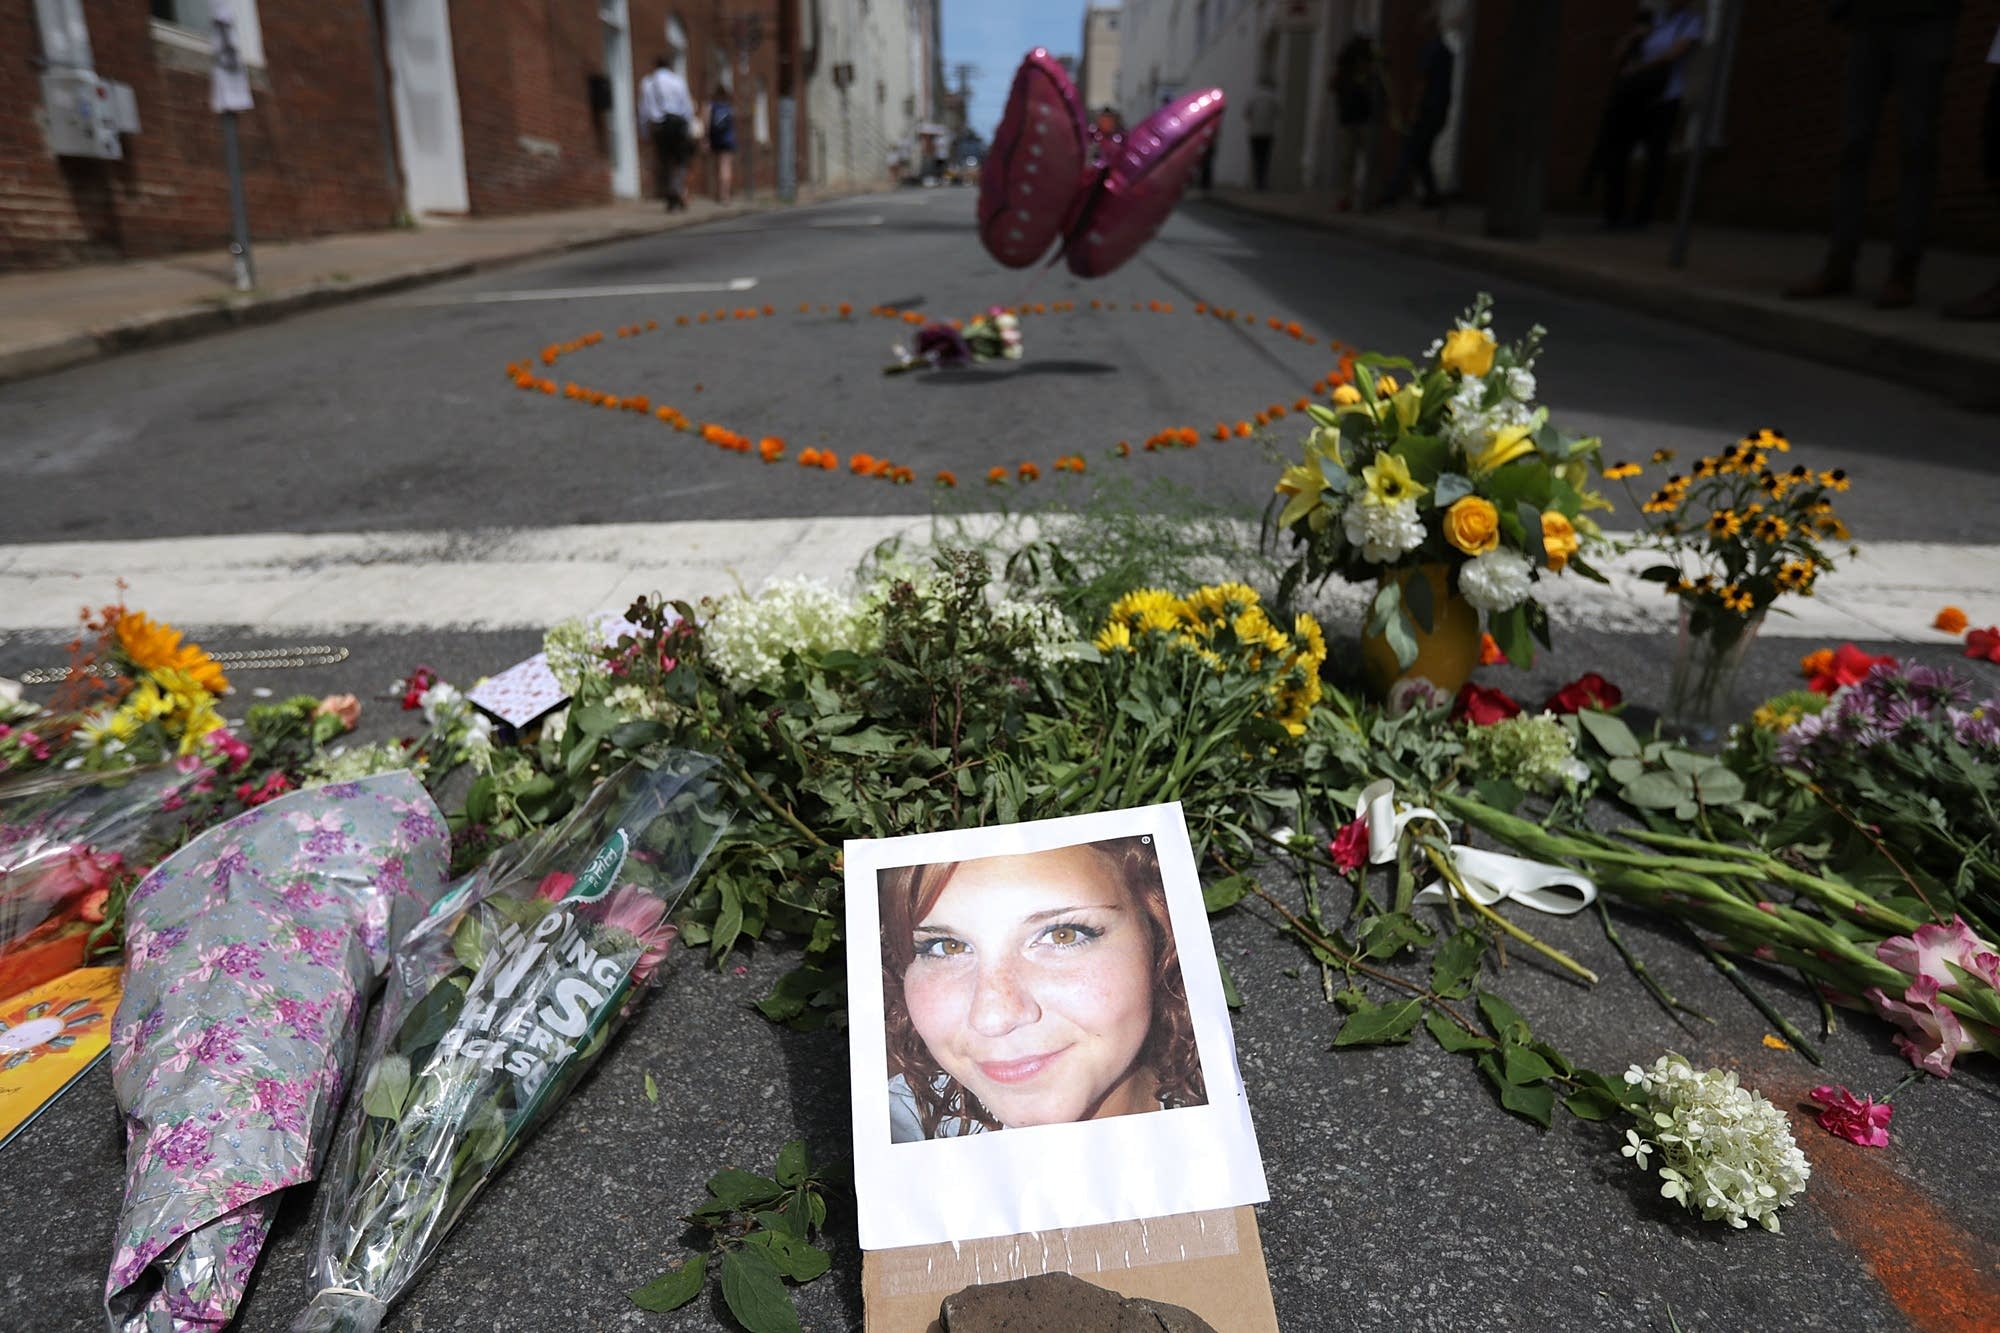 Flowers surround a photo of 32-year-old Heather Heyer.